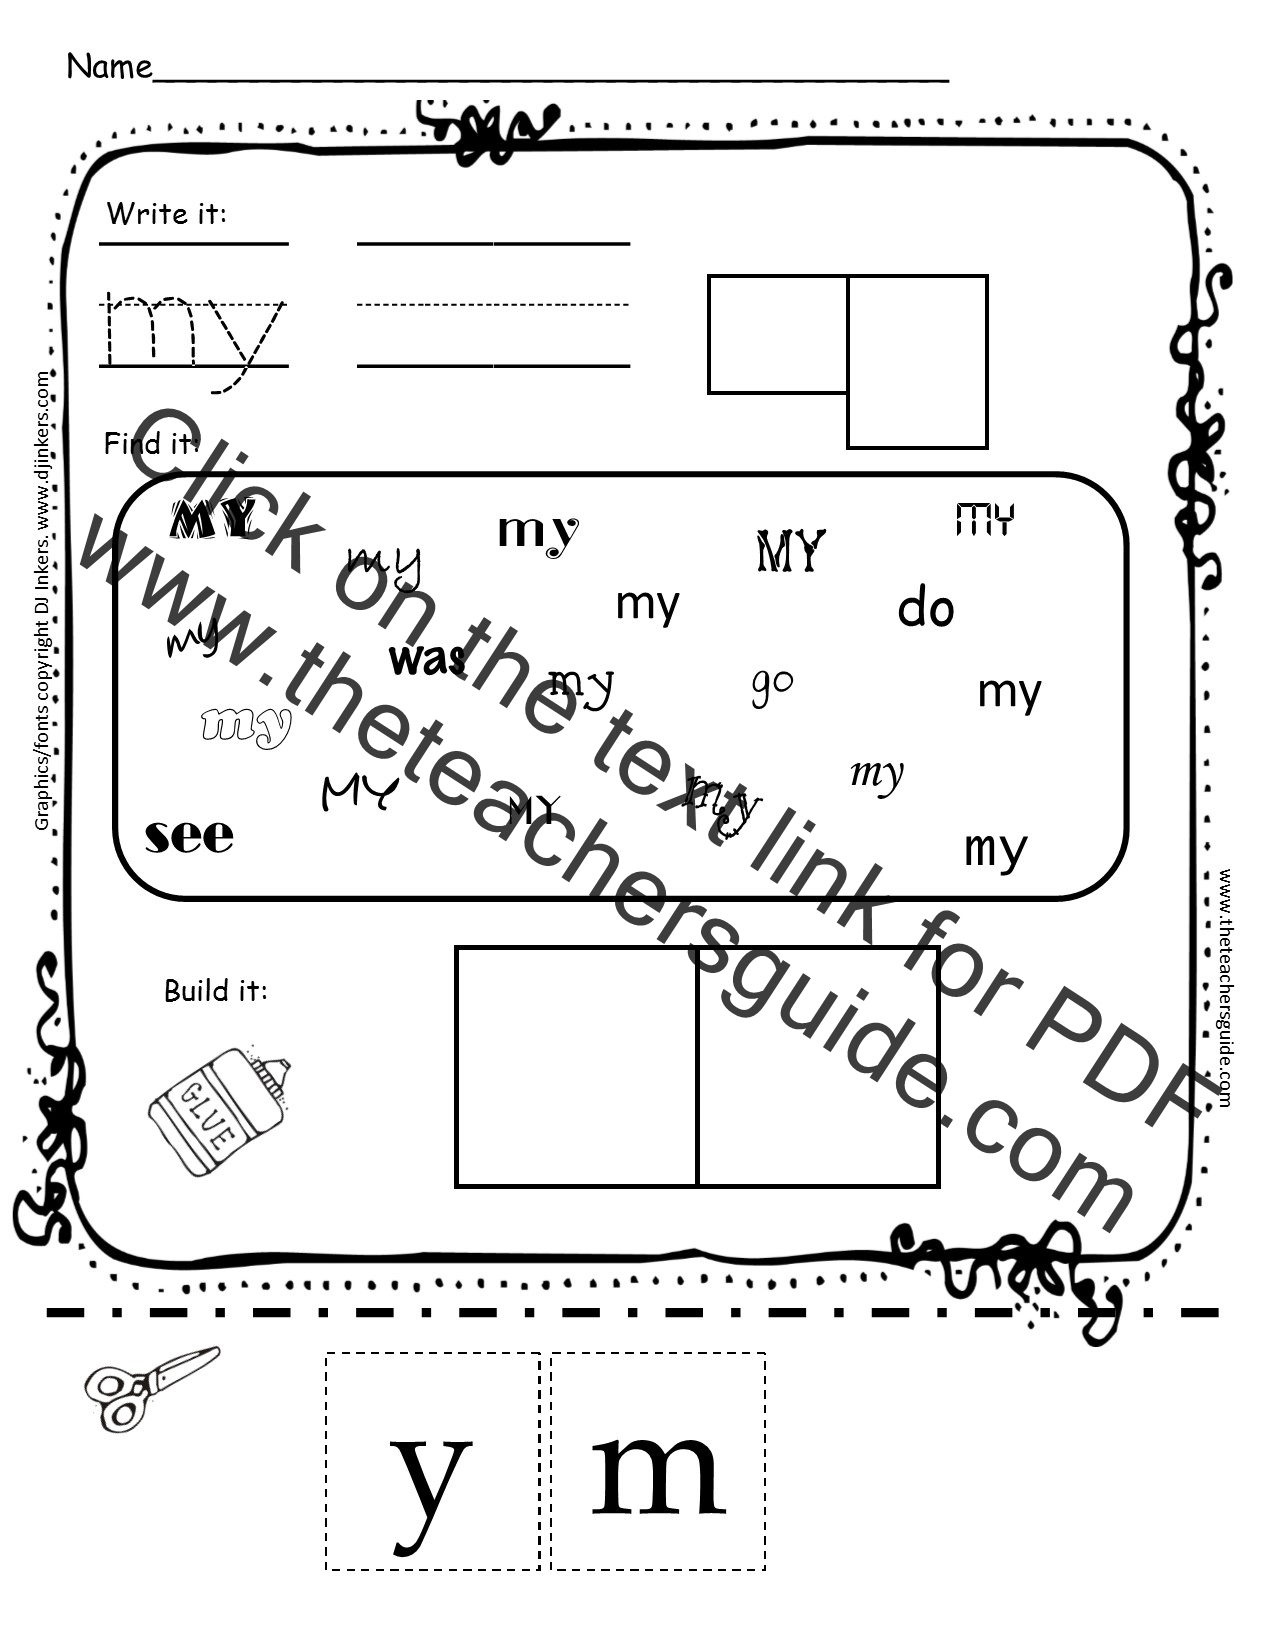 Mysightword furthermore Zoo Picture Cloze P besides Printing Practice Lower Case H Premium also Dab It Alphabet Worksheets Lower And Uppercase Letters together with Preschool Worksheets St Patricks Day. on kindergarten worksheet for re